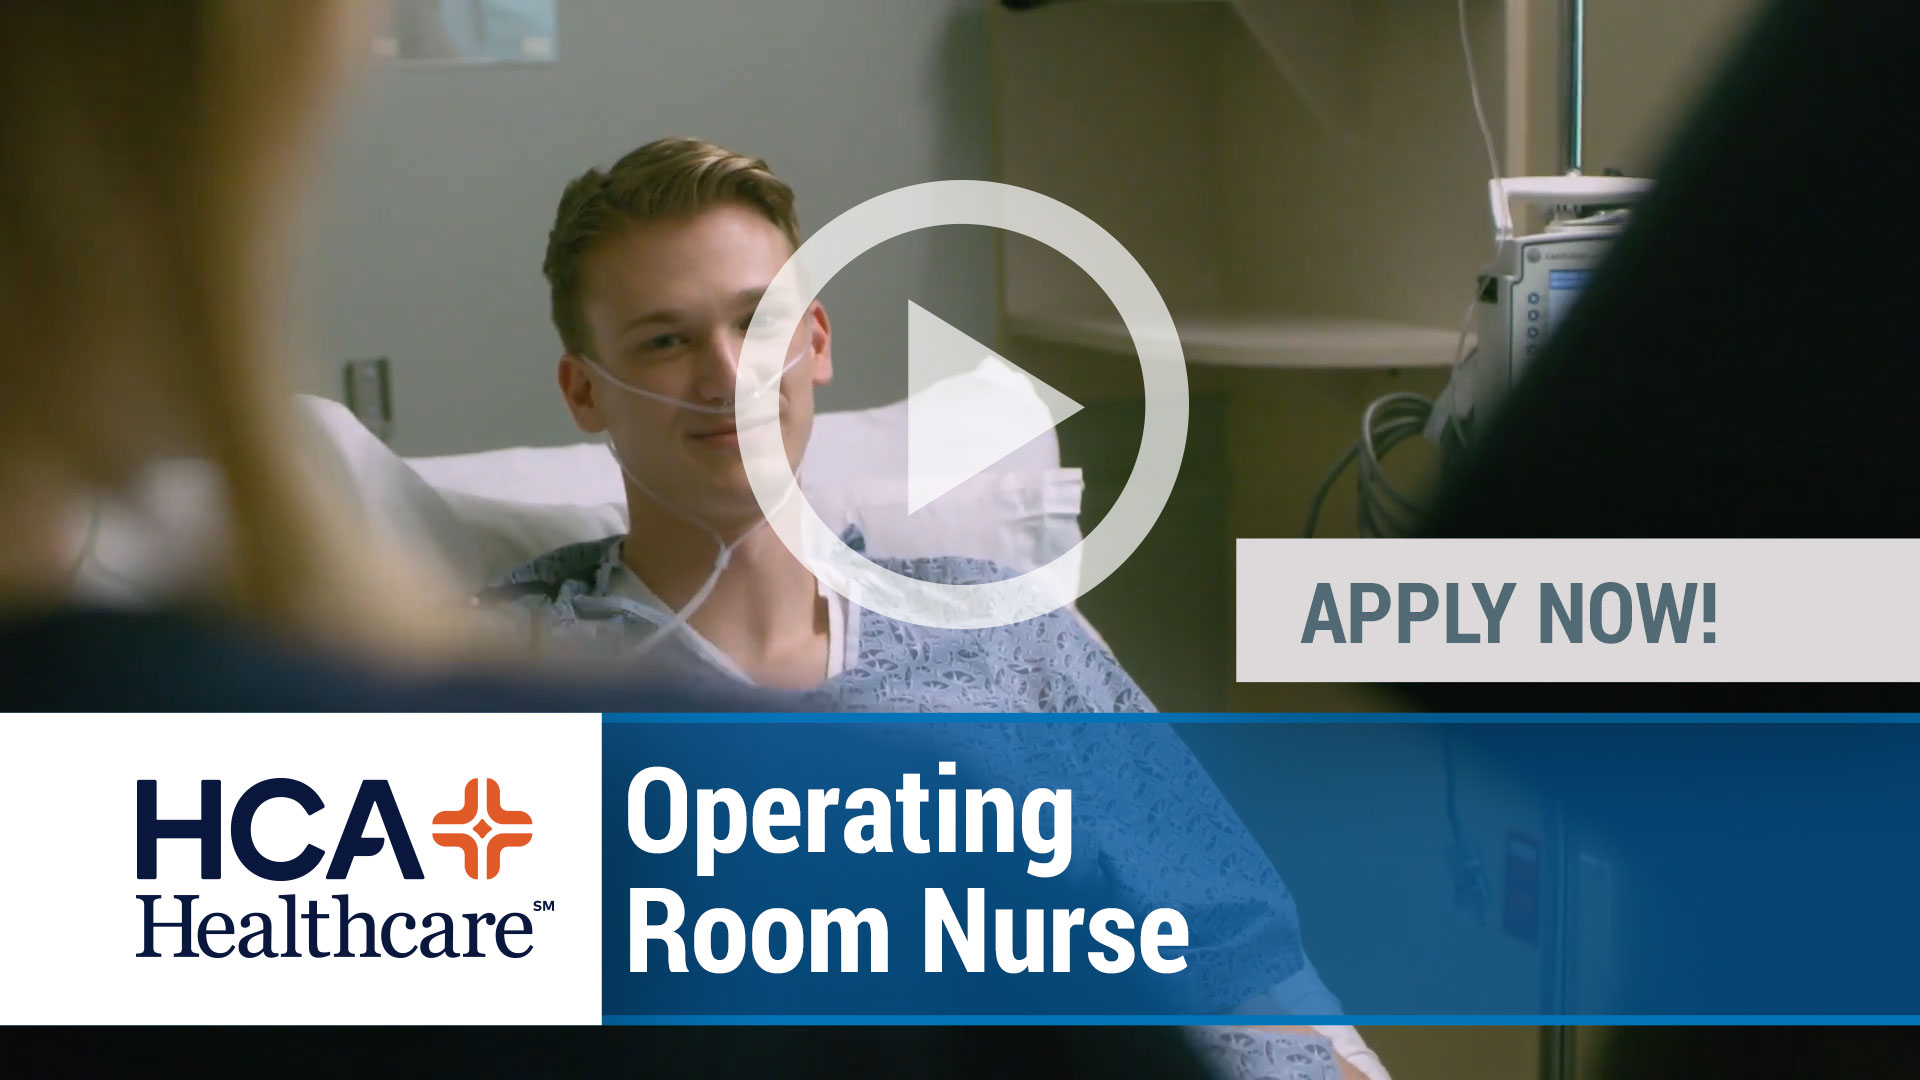 Watch our careers video for available job opening Operating Room Nurse in Kansas City, Missouri